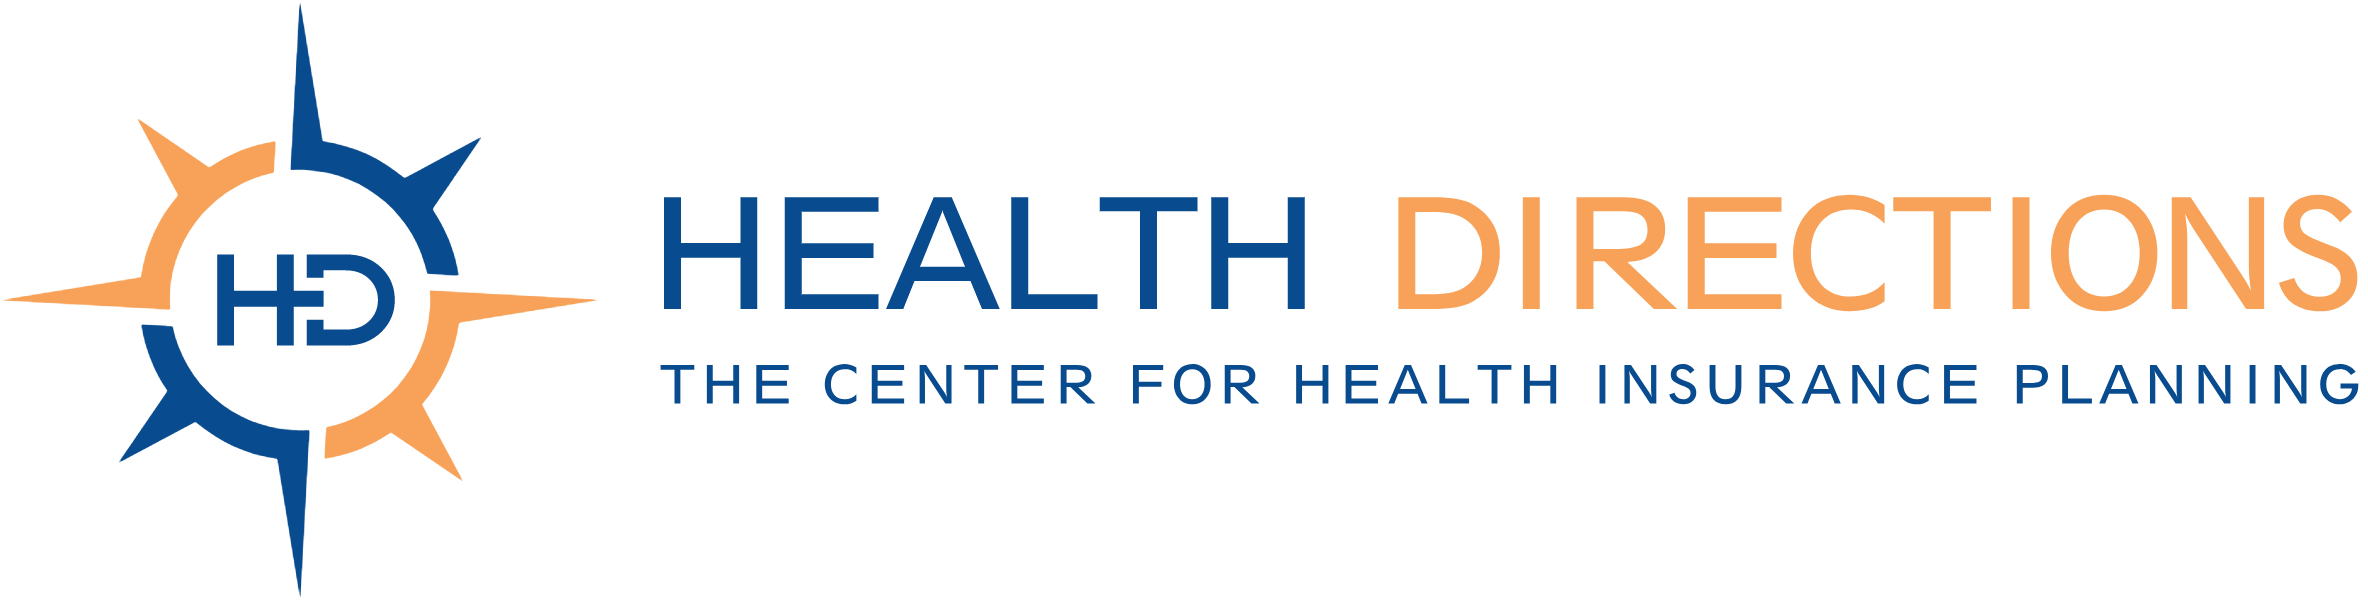 health directions logo.png